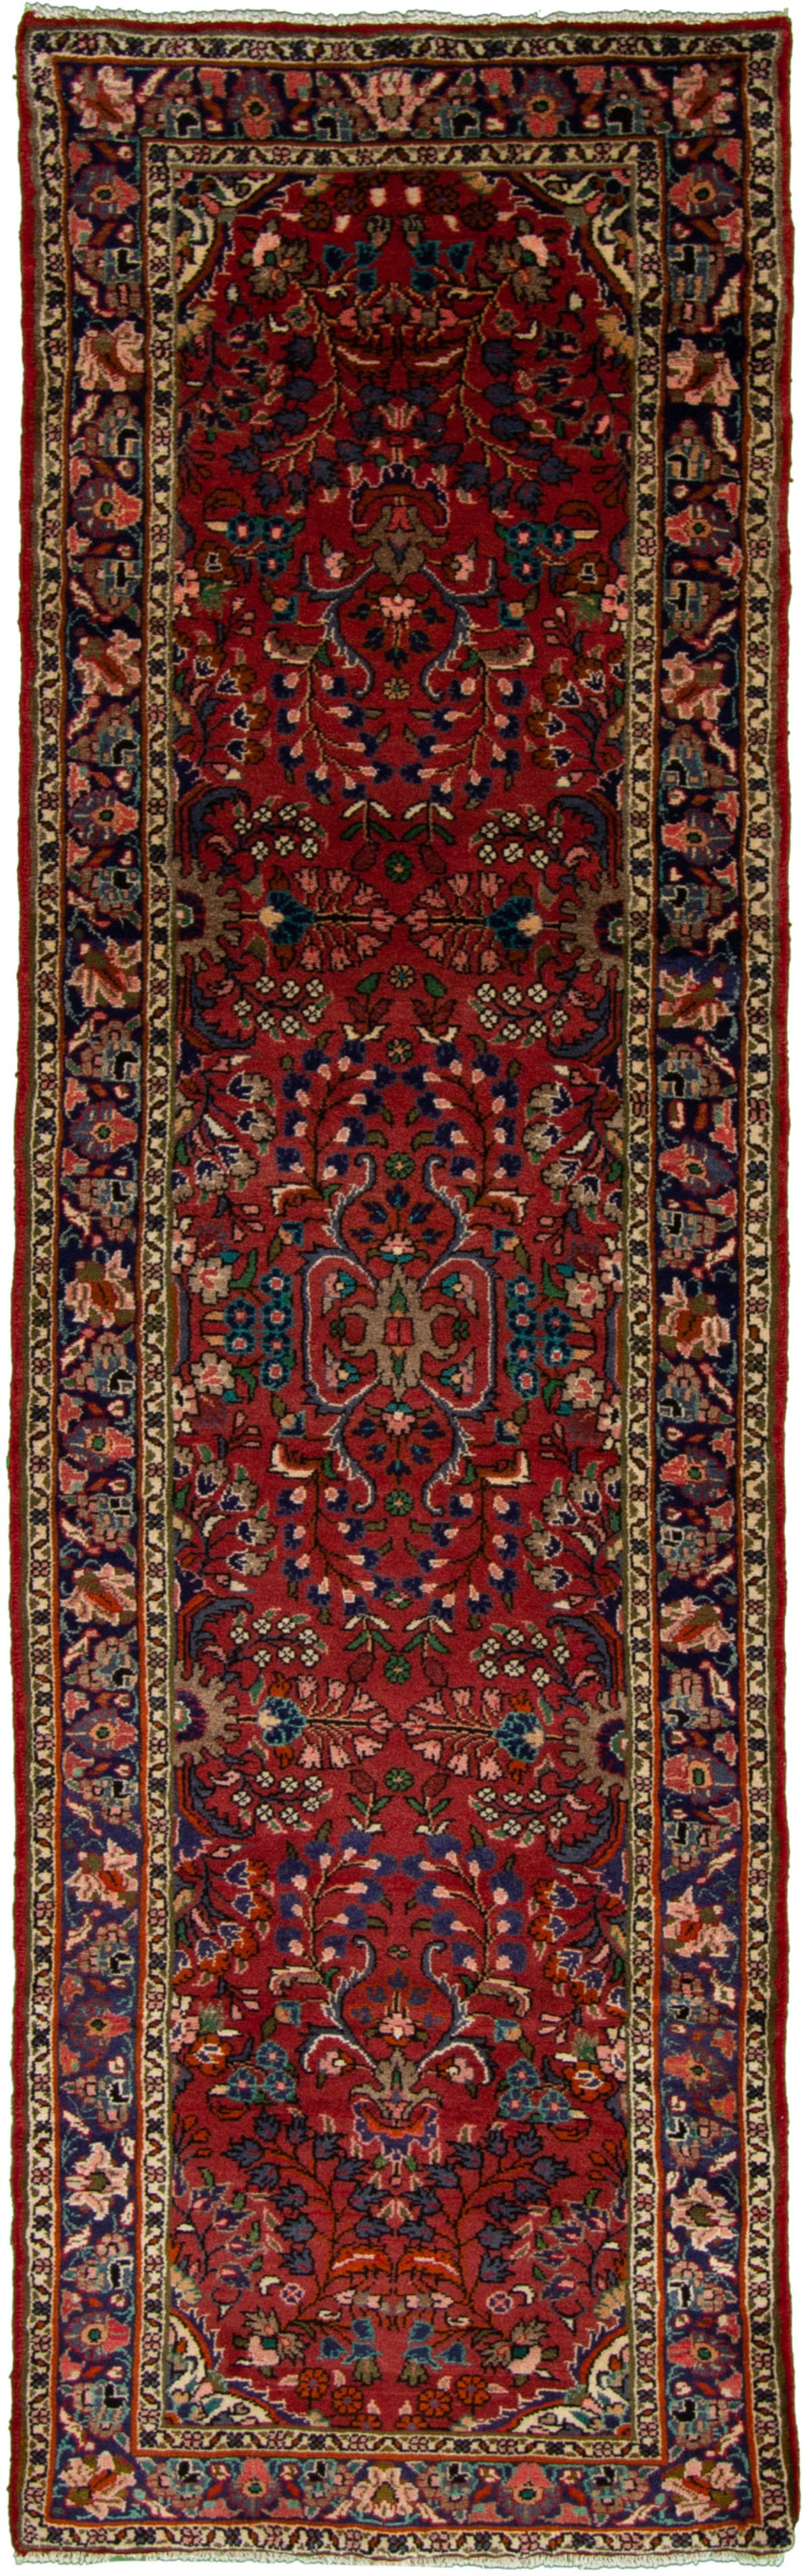 """Hand-knotted Lilihan Red Wool Rug 2'11"""" x 9'5"""" Size: 2'11"""" x 9'5"""""""